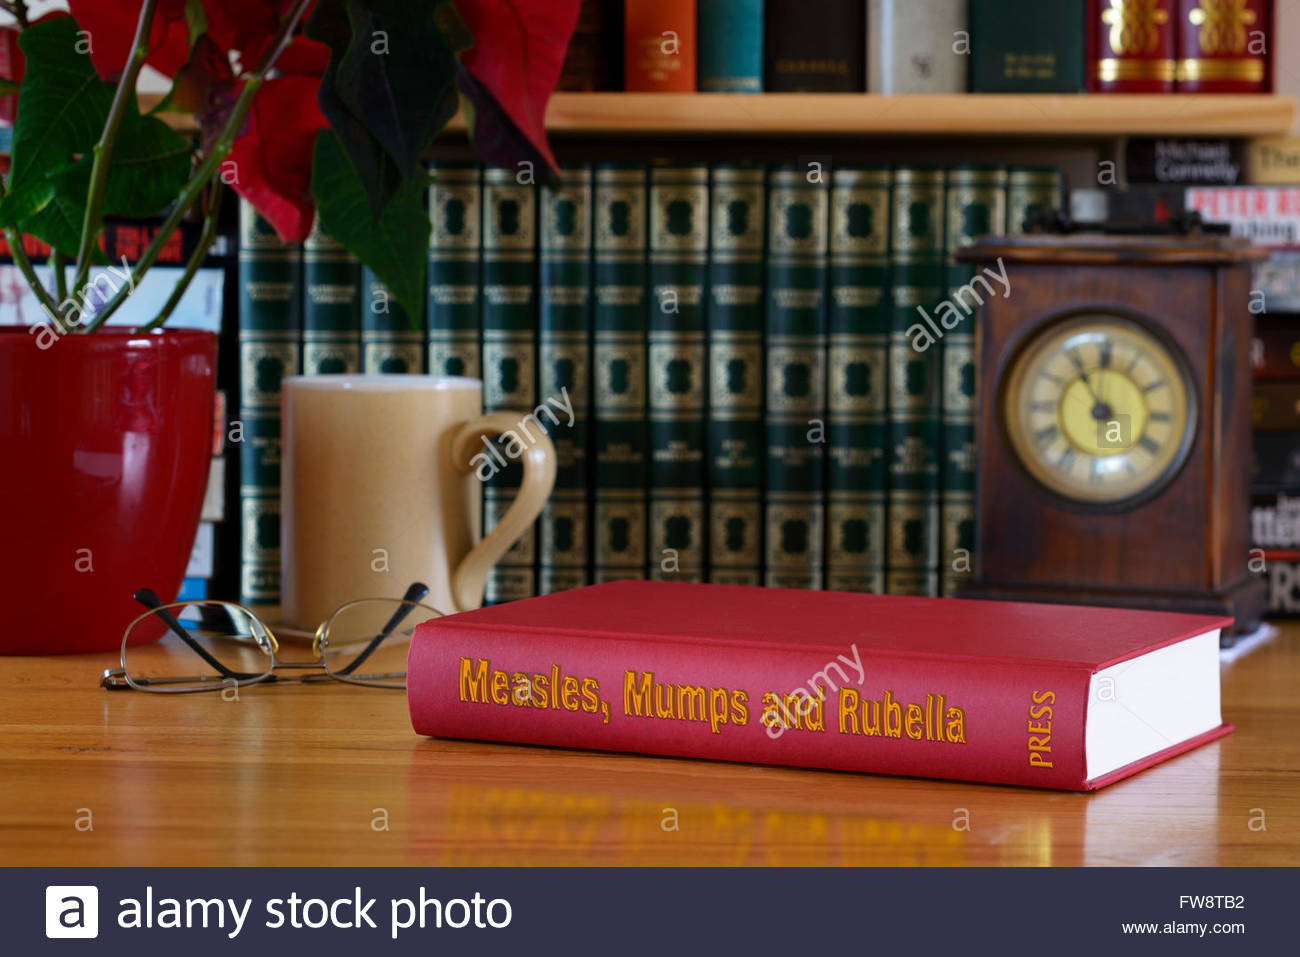 Measles, Mumps and Rubella (MMR) book title on desk, England - Stock Image